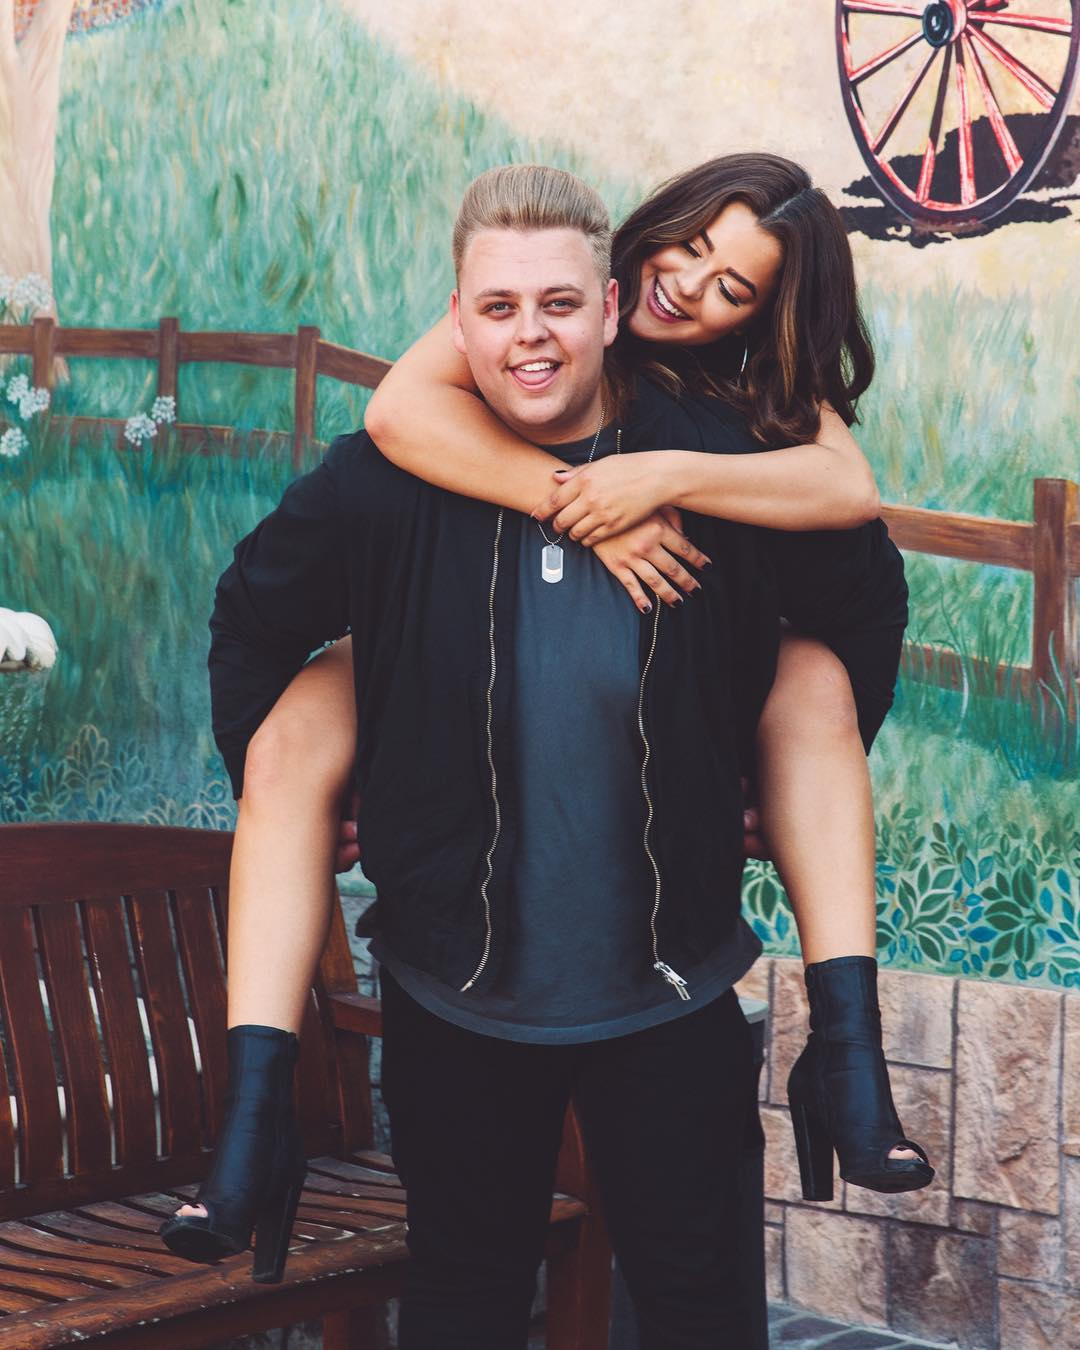 Image of Tessa Brooks and Nick Crompton.